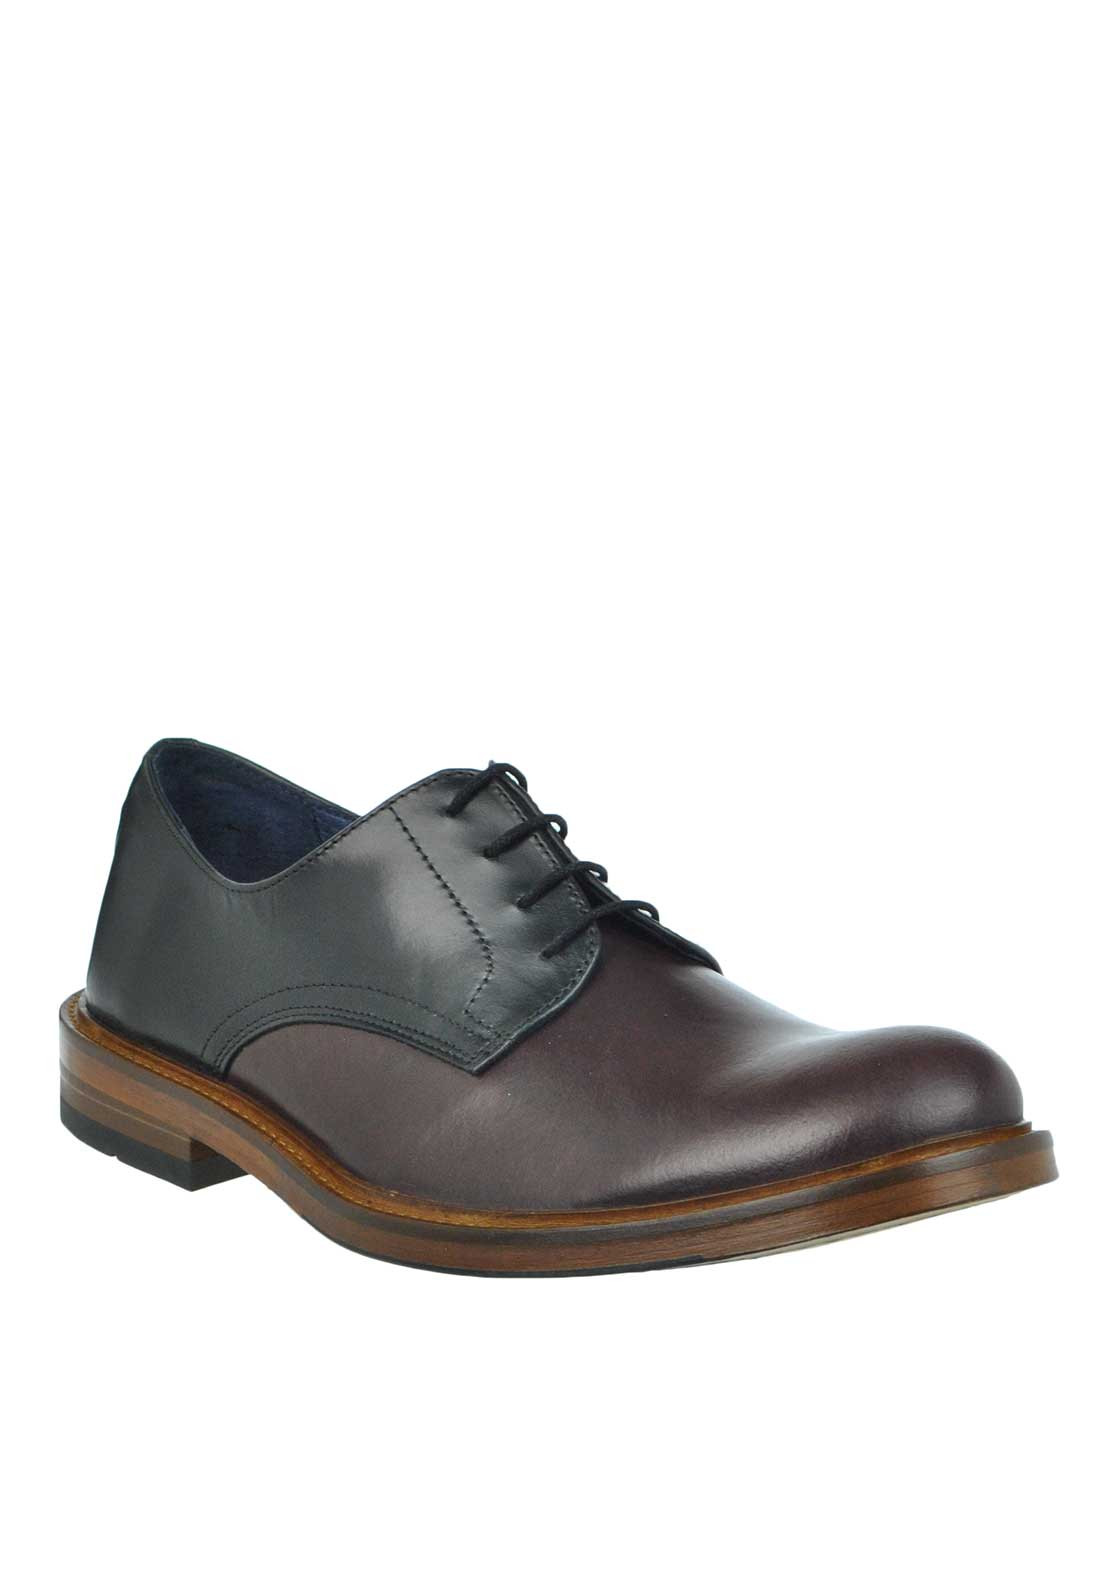 Remus Uomo Mens Gents Leather Lace Up Shoe, Wine